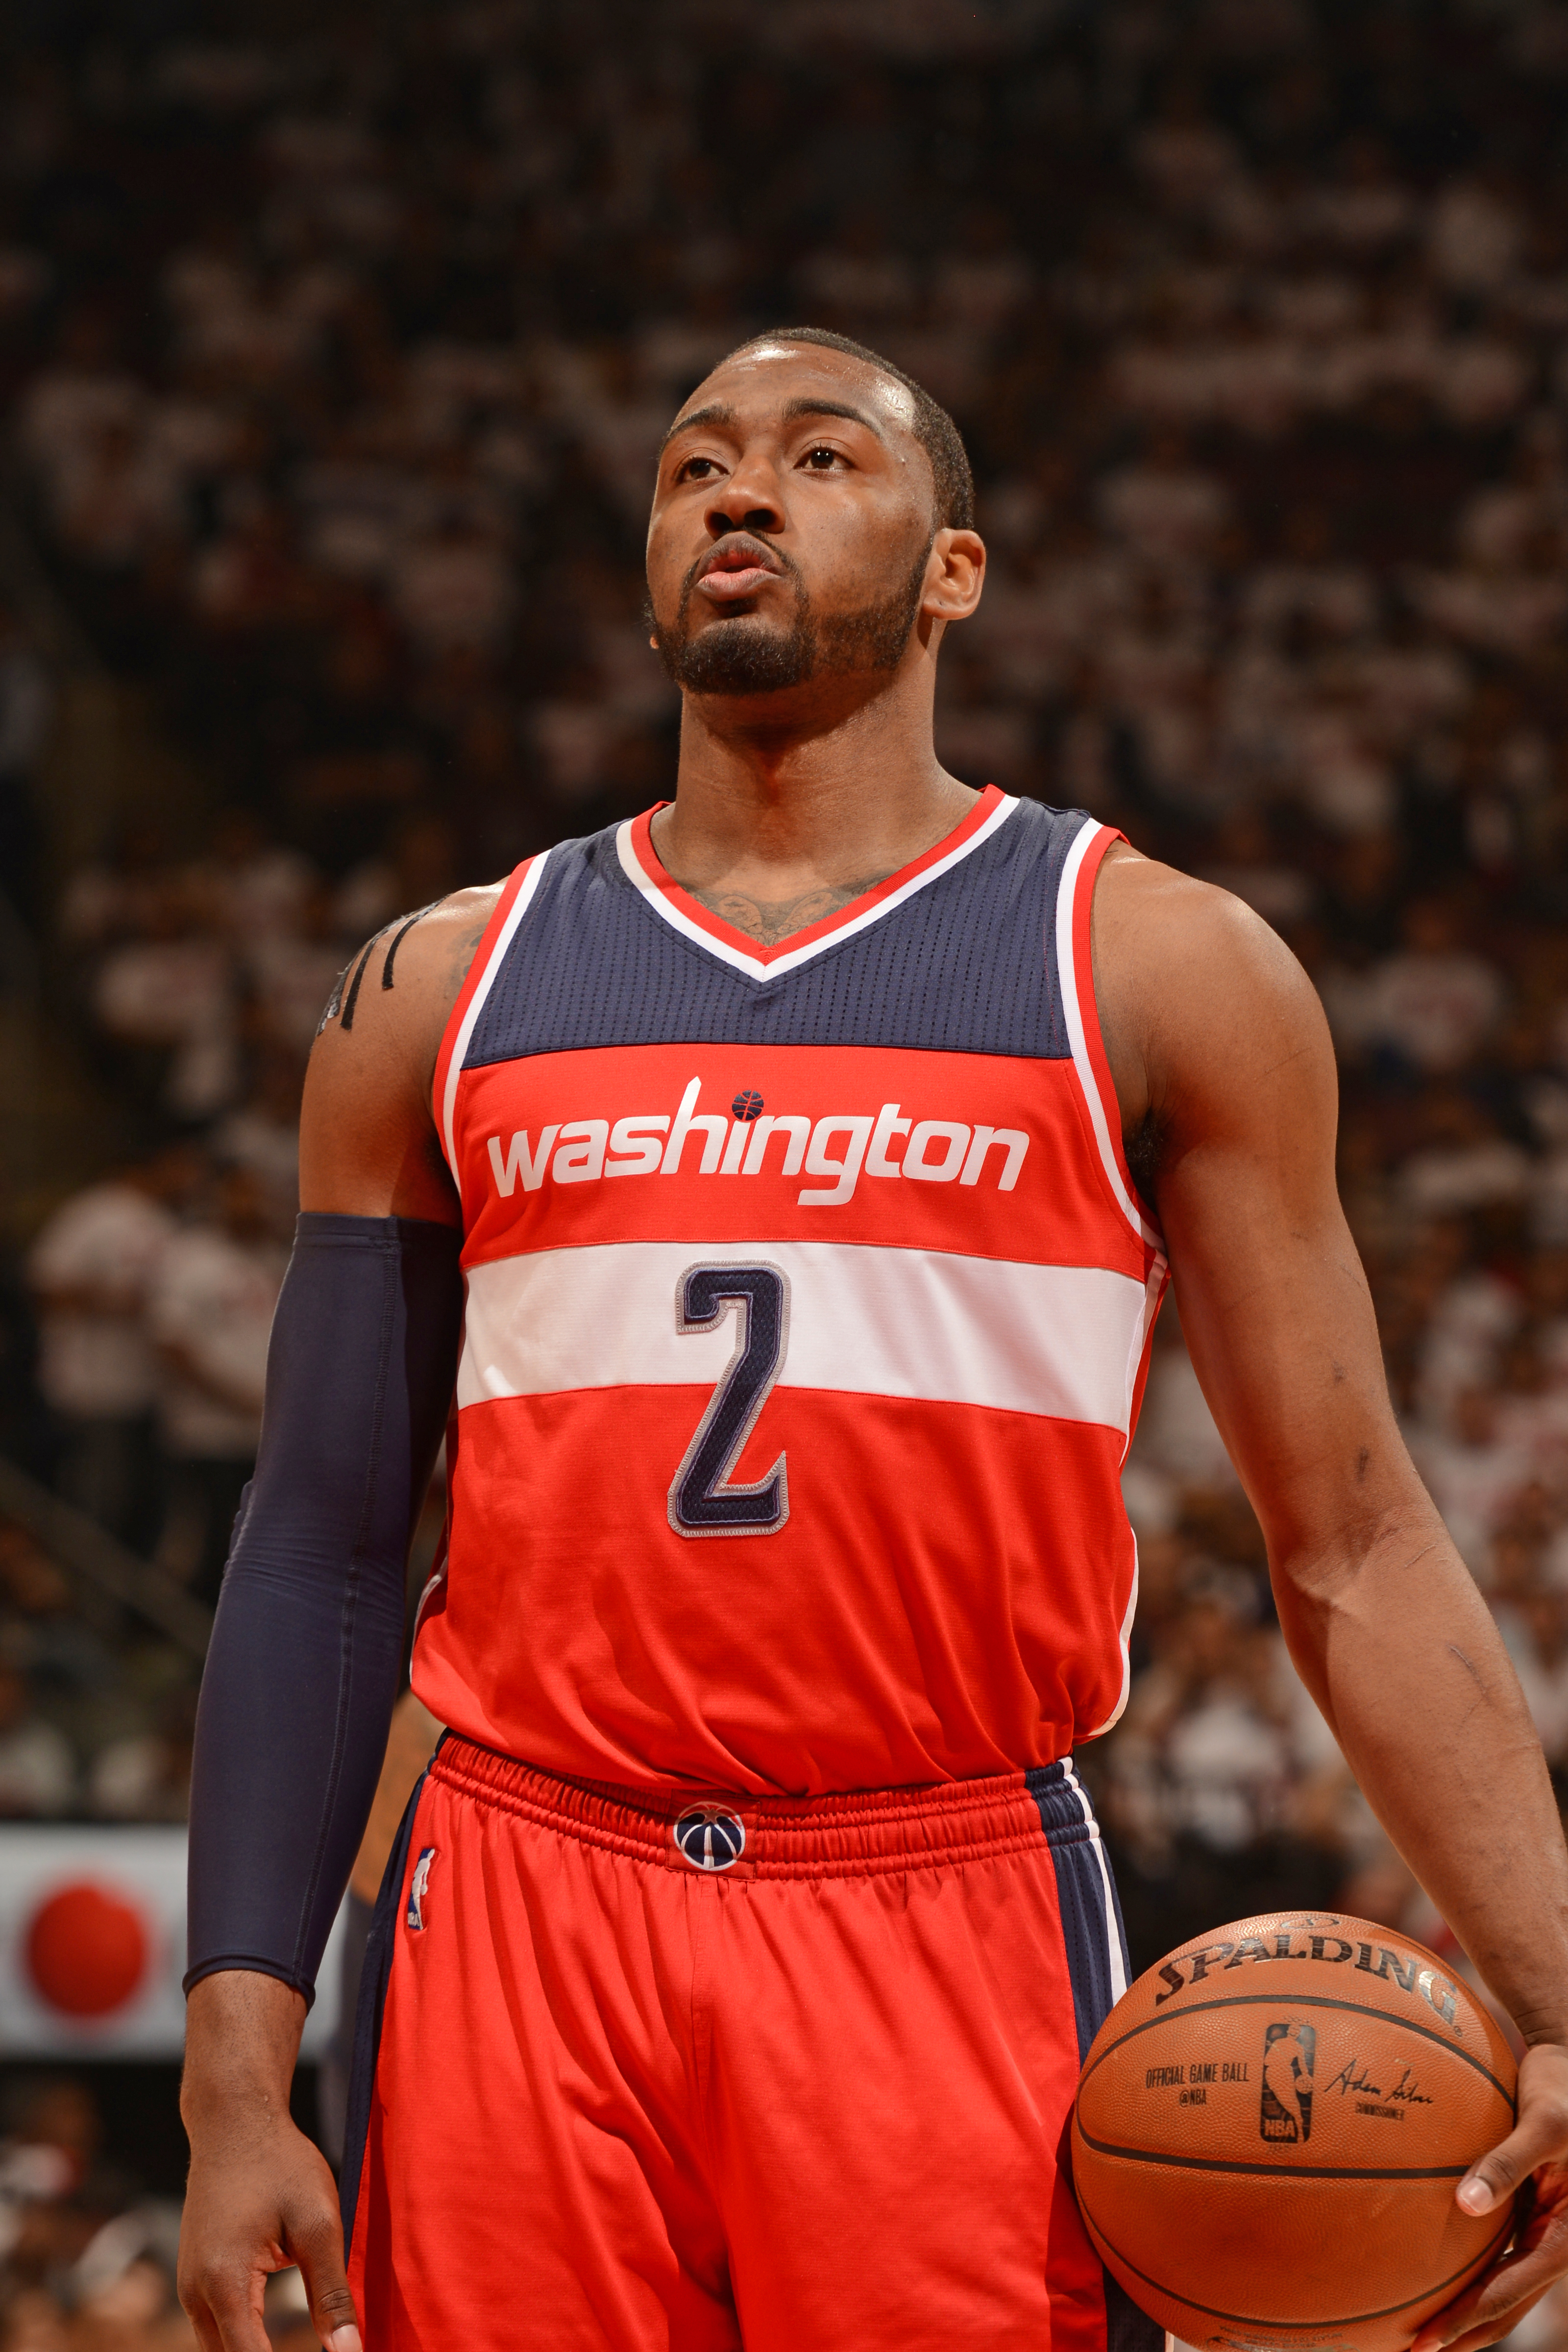 TORONTO, CANADA - APRIl 21:  John Wall #2 of the Washington Wizards shoots a free throw in Game Two of the Eastern Conference Quarterfinals against the Toronto Raptors during the 2015 NBA Playoffs on April 21, 2015 at the Air Canada Centre in Toronto, Ont